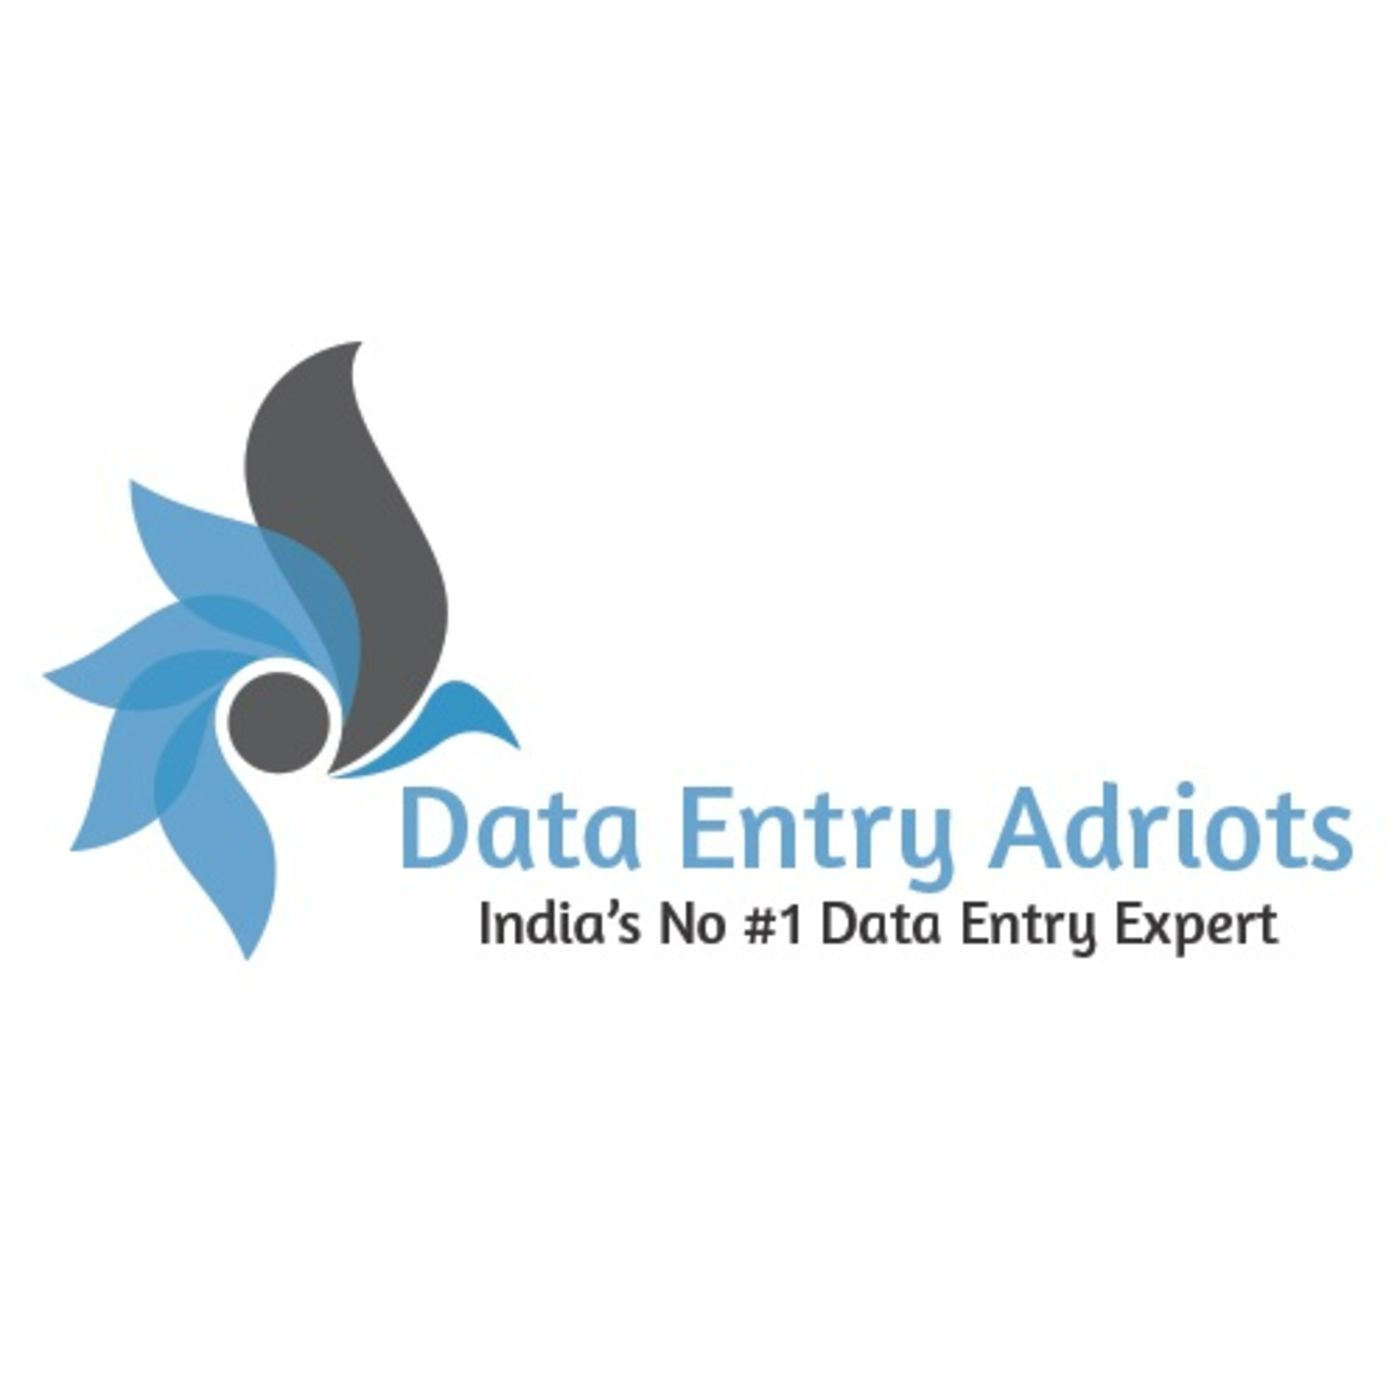 Data Entry Adroits